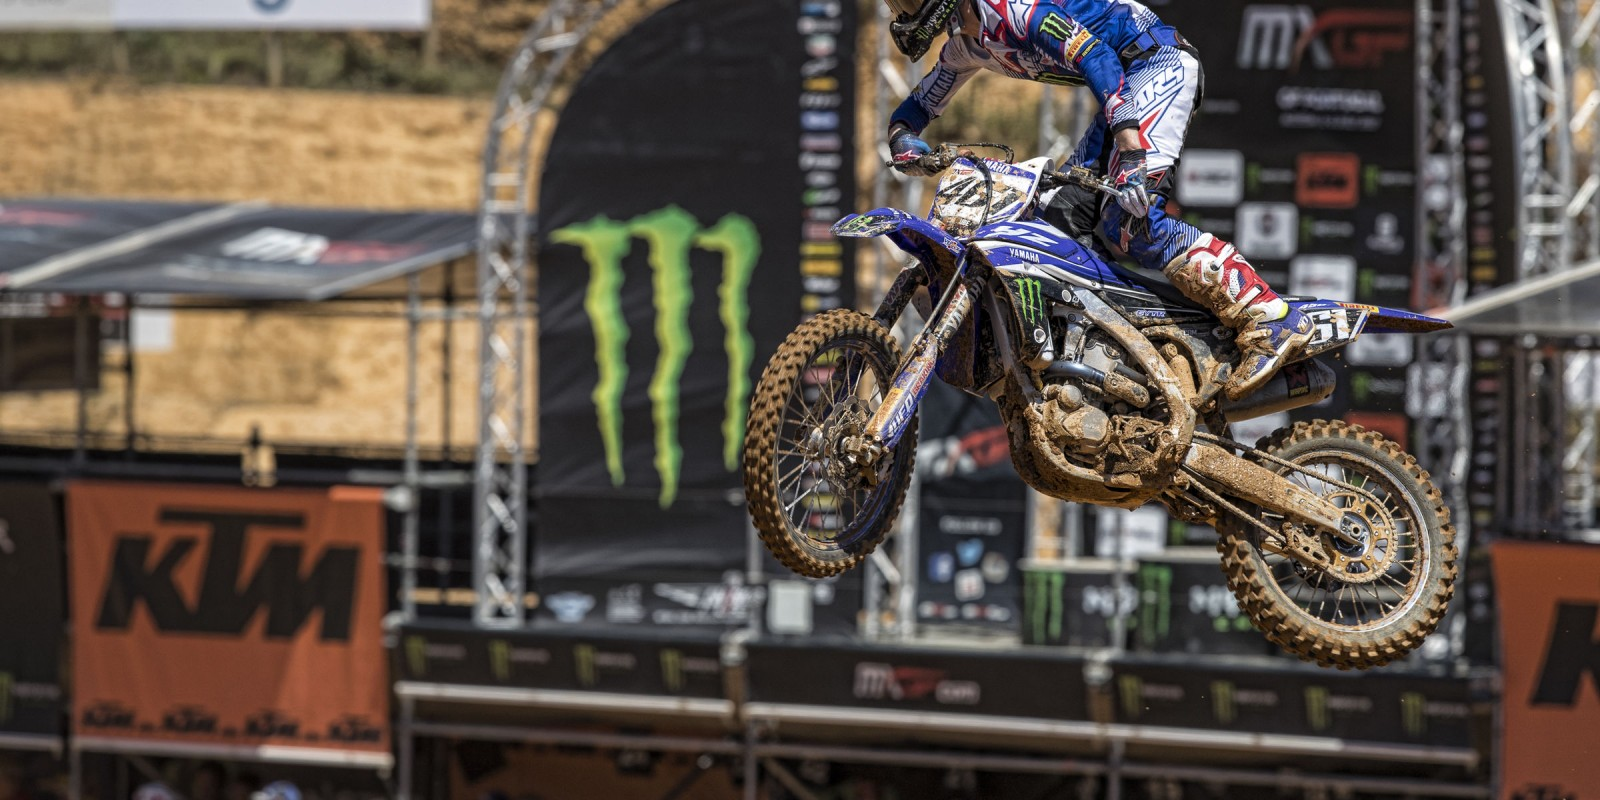 Romain Febvre at the 2017 Grand Prix of Portugal